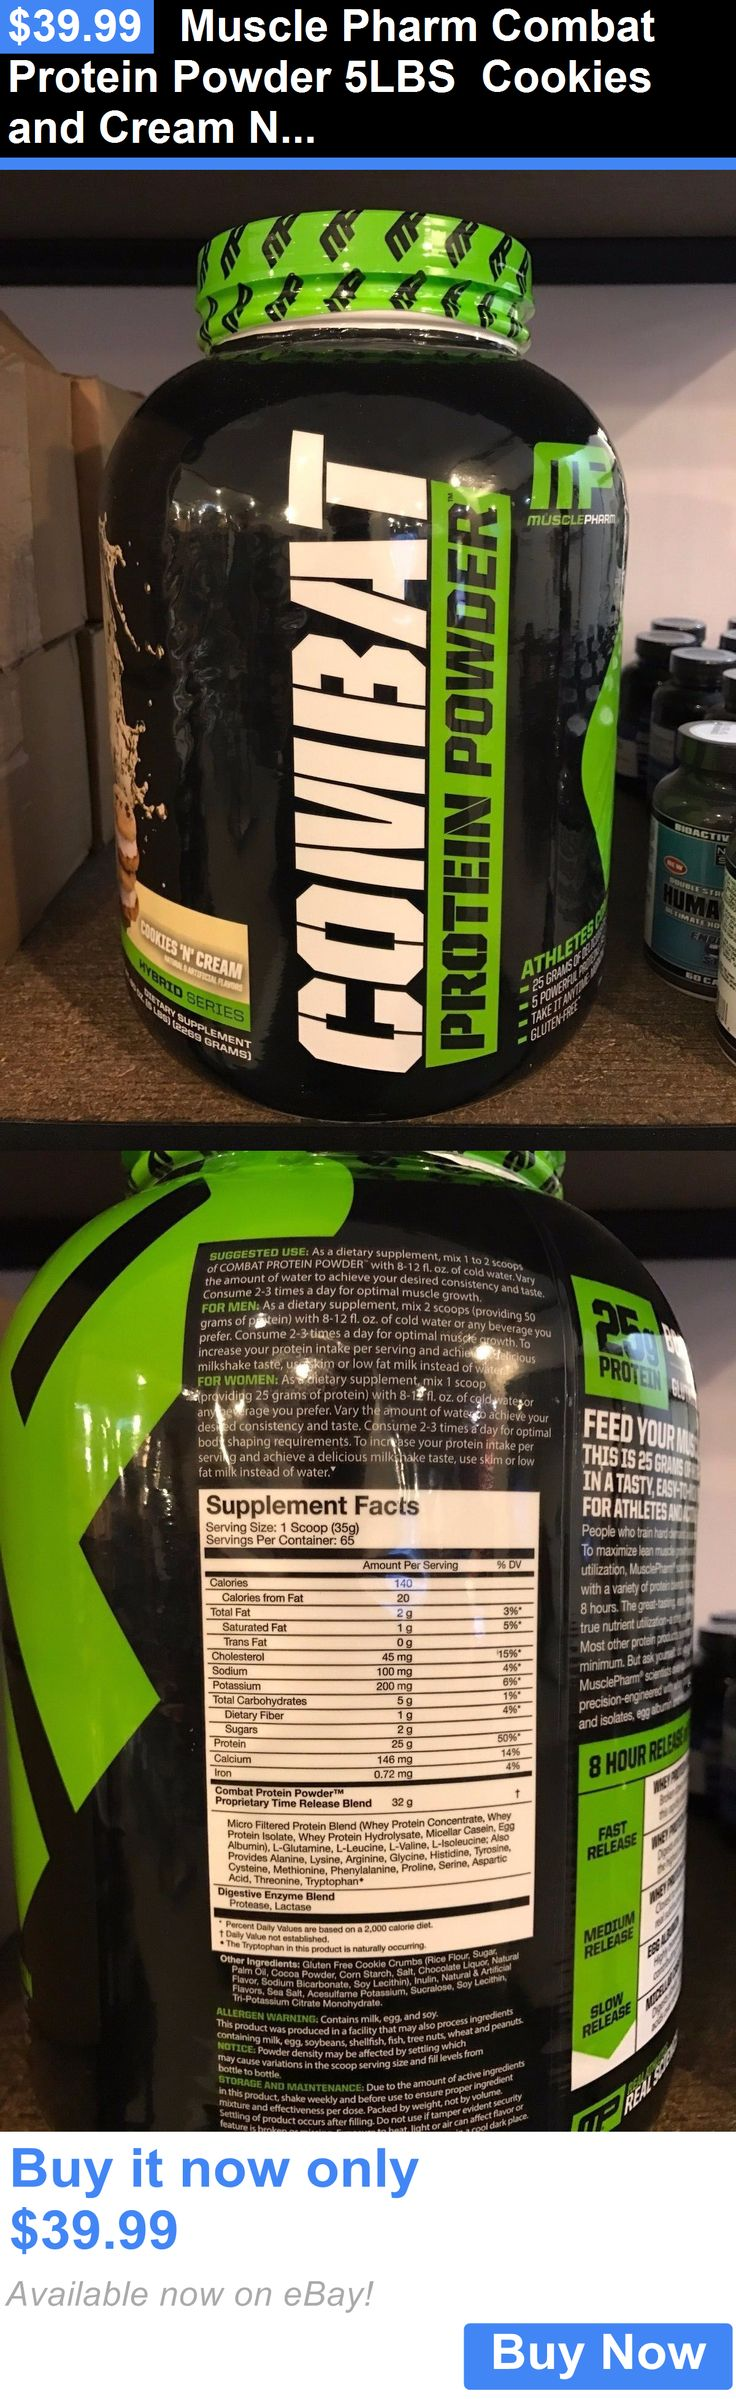 health and beauty: Muscle Pharm Combat Protein Powder 5Lbs Cookies And Cream New/Factory Sealed BUY IT NOW ONLY: $39.99